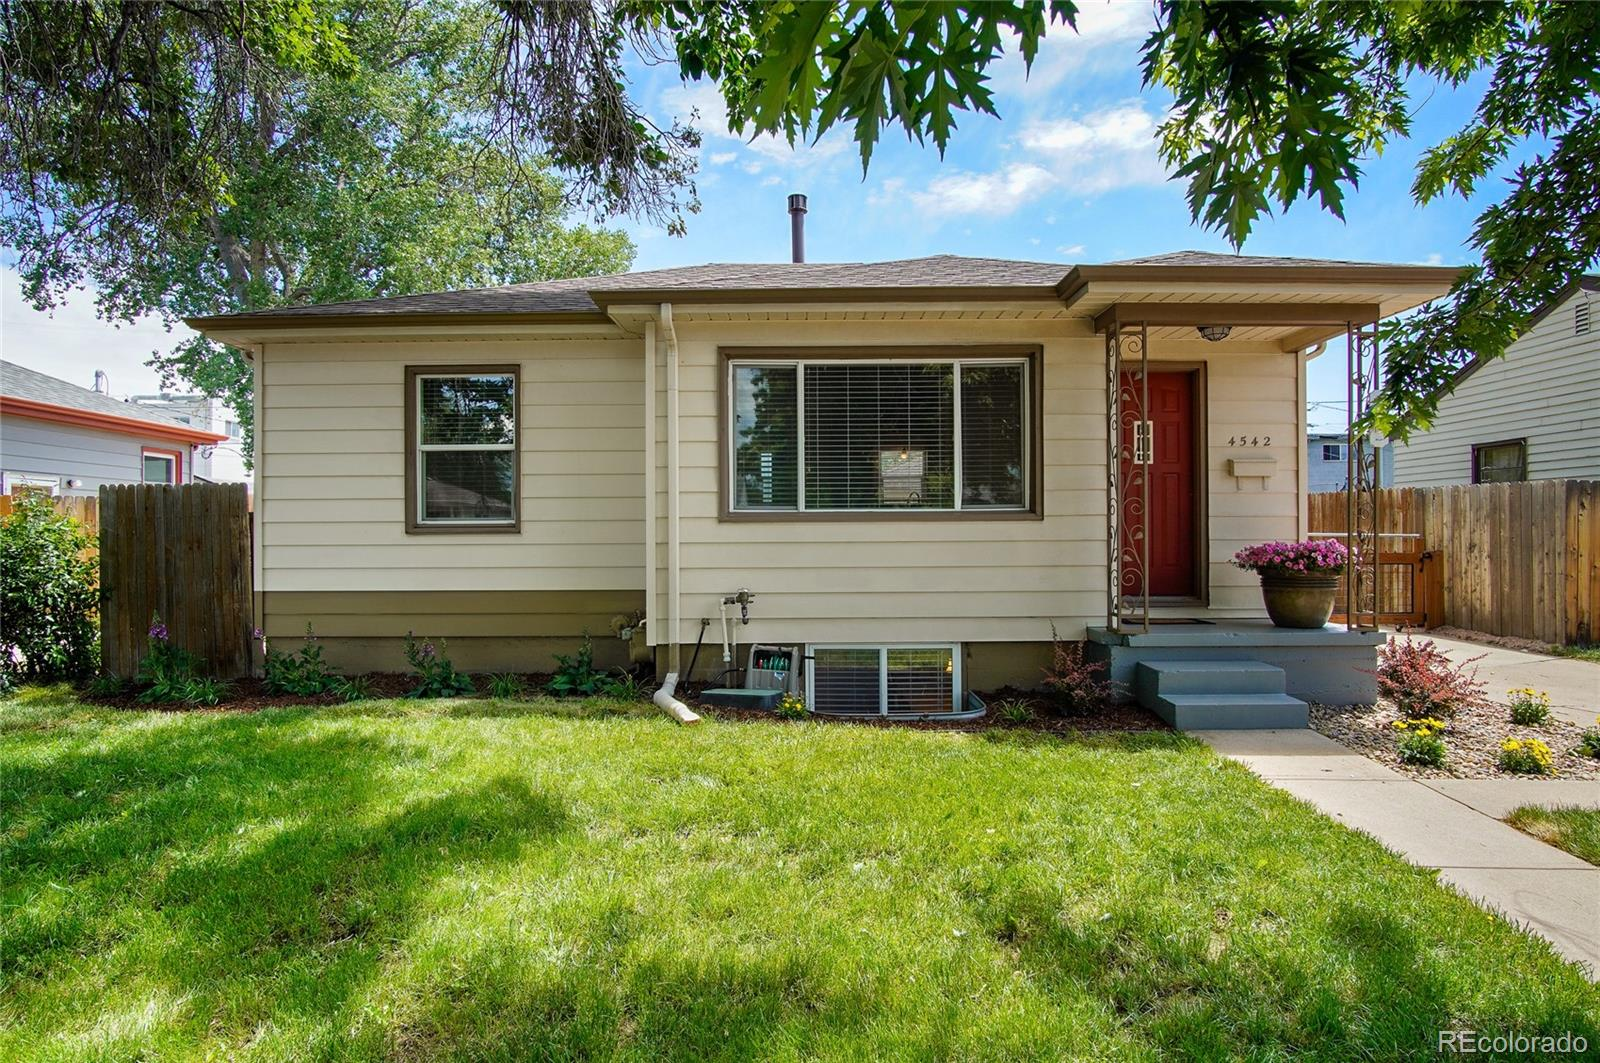 4542 S Acoma Street Property Photo - Englewood, CO real estate listing